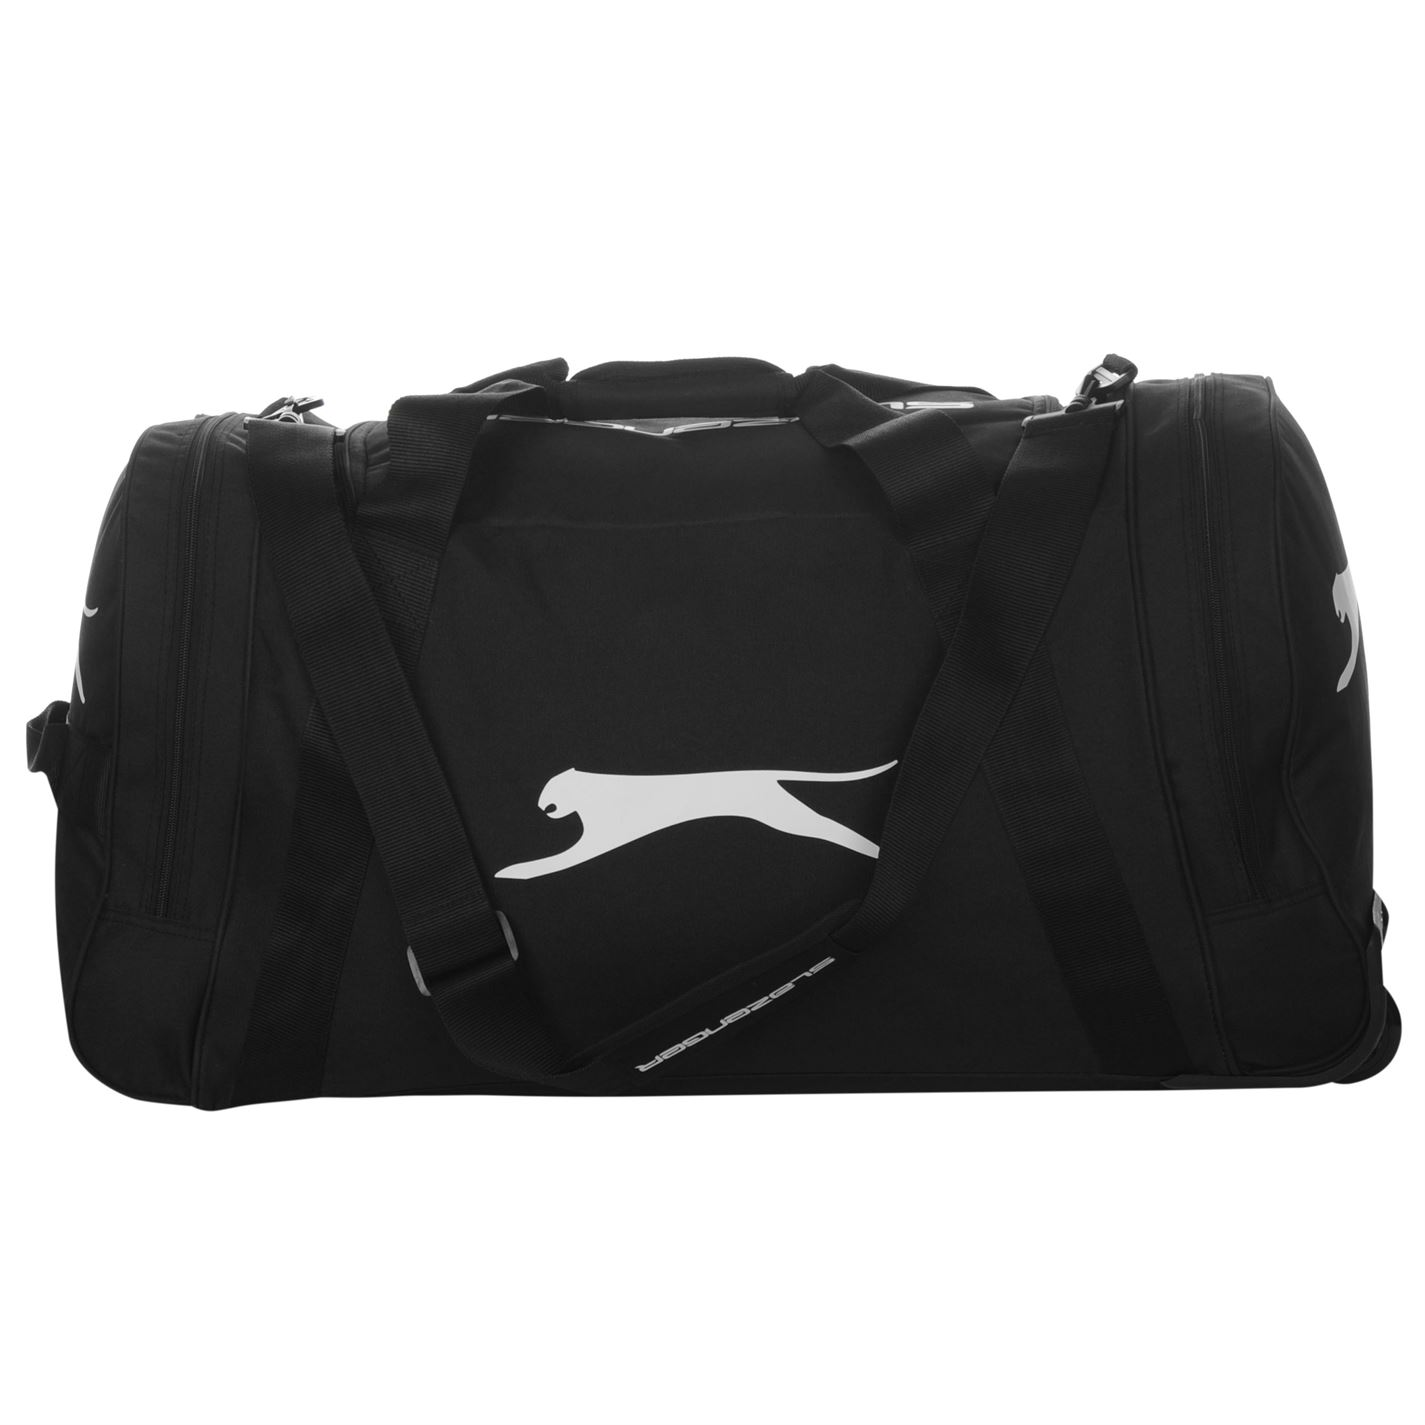 Slazenger-Wheel-Reinforced-Holdall-Travel-Storage-Luggage-Accessories 2d8b5b28047